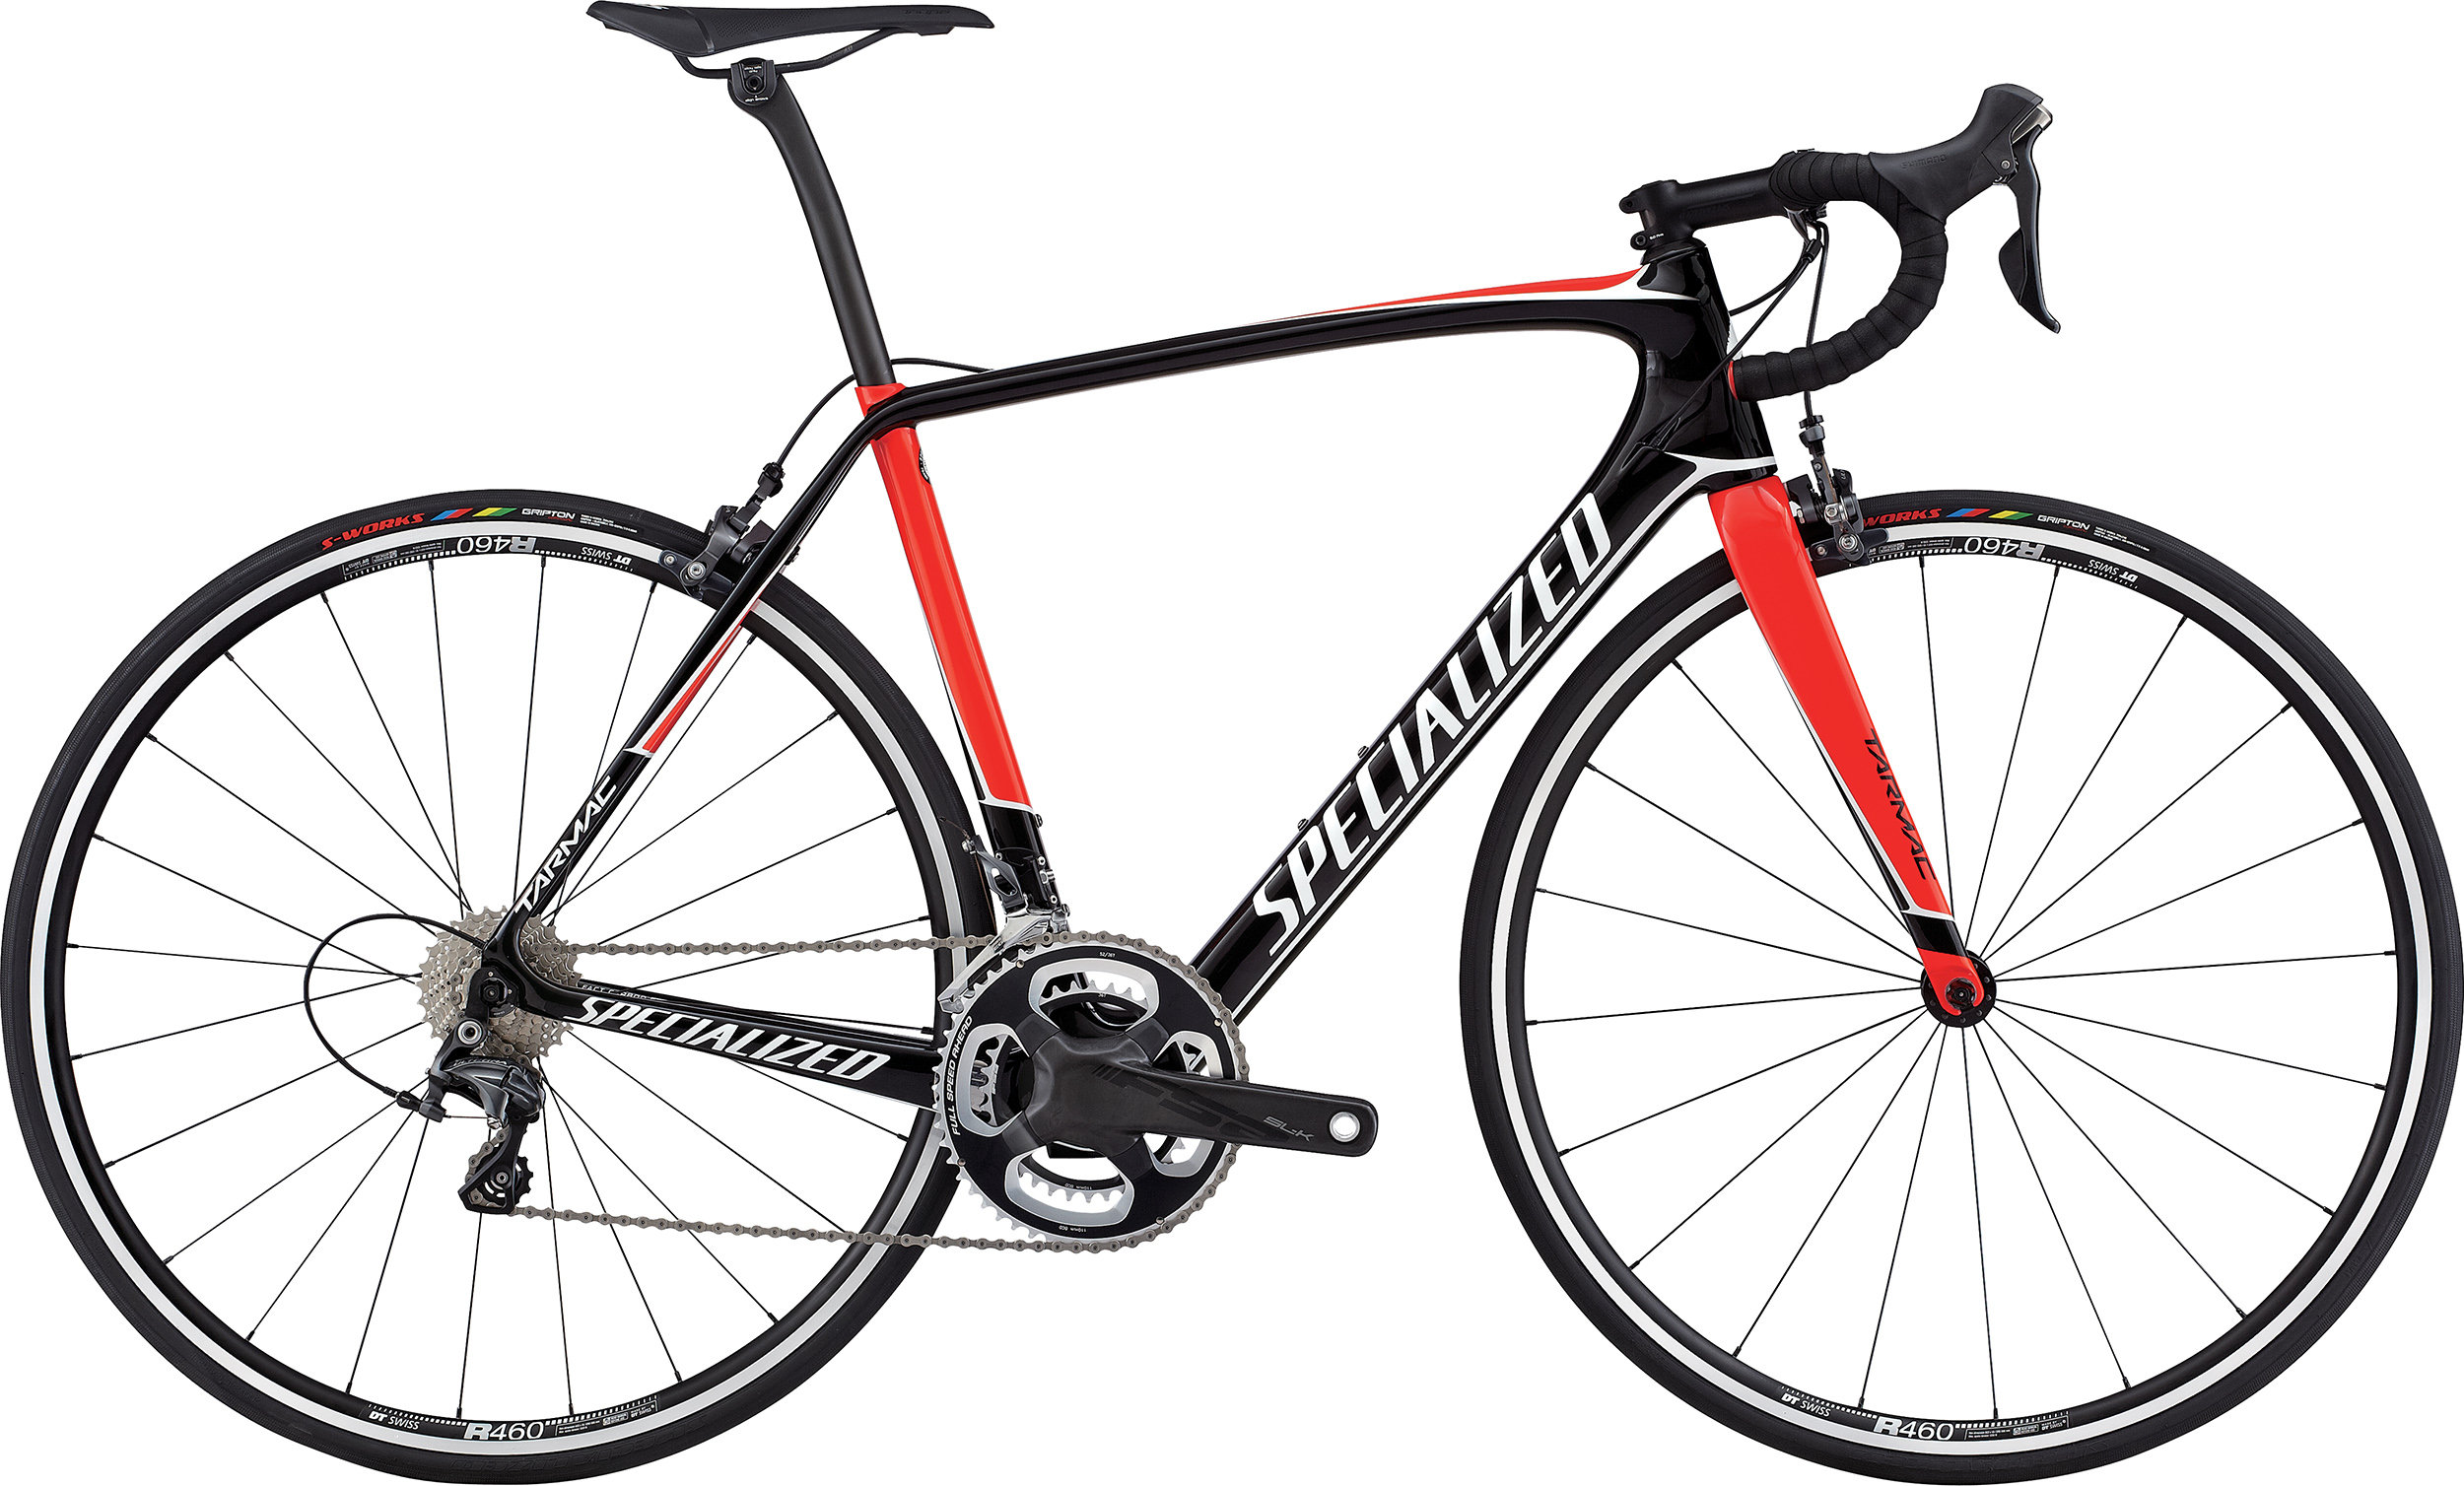 SPECIALIZED TARMAC EXPERT TARBLK/RKTRED/METWHT 52 - SPECIALIZED TARMAC EXPERT TARBLK/RKTRED/METWHT 52